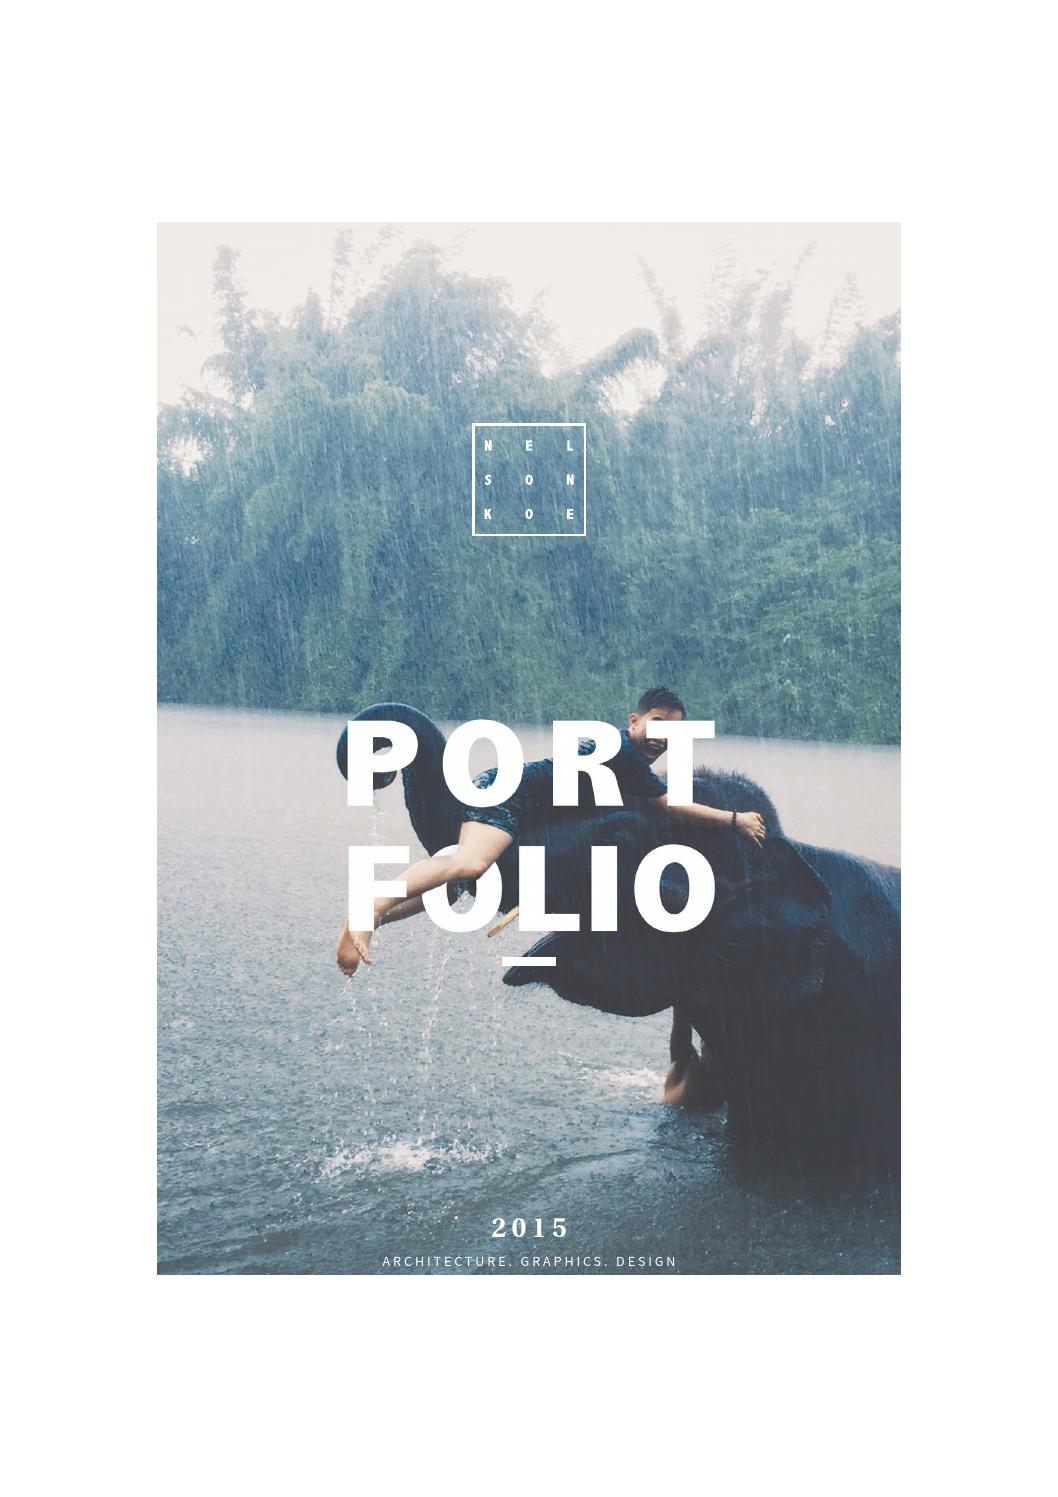 Graphic design portfolio 2015 by Nelson Koe - issuu